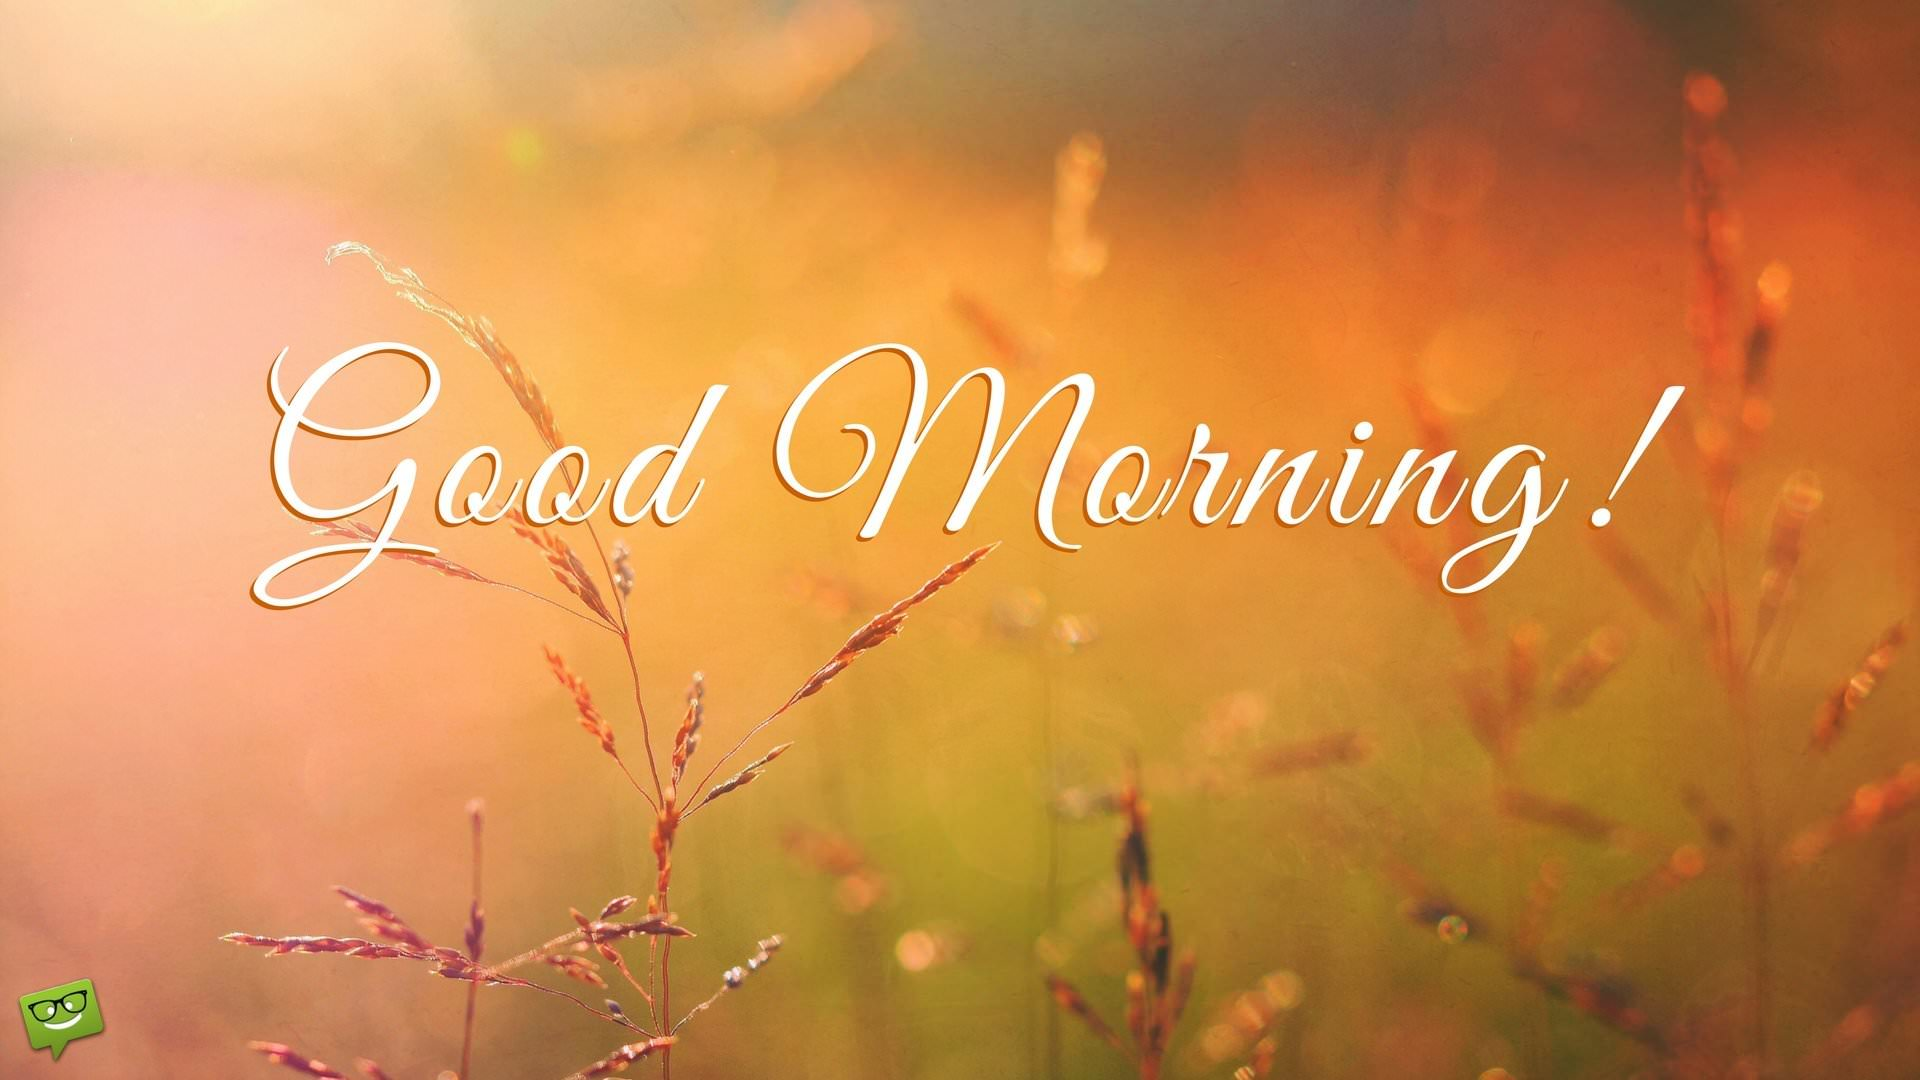 Good Morning Everyone Letter Inspirational Good Morning Messages